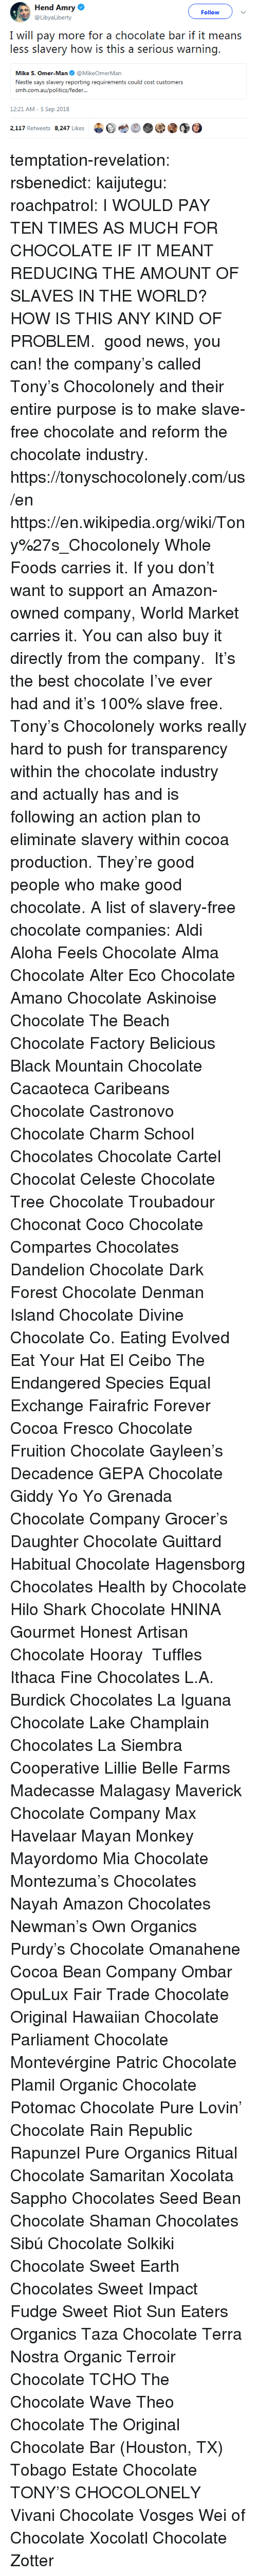 aloha: Hend Amry  @LibyaLiberty  Follow  I will pay more for a chocolate bar if it means  less slavery how is this a serious warning.  Mike S. Omer-Man@MikeOmerMan  Nestle says slavery reporting requirements could cost customers  srmi.exiiauafoliiicxi/icxlkir...  12:21 AM-5 Sep 2018  2,117 Retweets 8.247 Likes  bet  @③ temptation-revelation:  rsbenedict:  kaijutegu:  roachpatrol: I WOULD PAY TEN TIMES AS MUCH FOR CHOCOLATE IF IT MEANT REDUCING THE AMOUNT OF SLAVES IN THE WORLD? HOW IS THIS ANY KIND OF PROBLEM.  good news, you can! the company's called Tony's Chocolonely and their entire purpose is to make slave-free chocolate and reform the chocolate industry. https://tonyschocolonely.com/us/en https://en.wikipedia.org/wiki/Tony%27s_Chocolonely Whole Foods carries it. If you don't want to support an Amazon-owned company, World Market carries it. You can also buy it directly from the company.  It's the best chocolate I've ever had and it's 100% slave free. Tony's Chocolonely works really hard to push for transparency within the chocolate industry and actually has and is following an action plan to eliminate slavery within cocoa production. They're good people who make good chocolate.  A list of slavery-free chocolate companies:  Aldi  Aloha Feels Chocolate  Alma Chocolate  Alter Eco Chocolate  Amano Chocolate  Askinoise Chocolate  The Beach Chocolate Factory  Belicious  Black Mountain Chocolate  Cacaoteca  Caribeans Chocolate  Castronovo Chocolate  Charm School Chocolates  Chocolate Cartel  Chocolat Celeste  Chocolate Tree  Chocolate Troubadour  Choconat  Coco Chocolate  Compartes Chocolates  Dandelion Chocolate  Dark Forest Chocolate  Denman Island Chocolate  Divine Chocolate Co.  Eating Evolved  Eat Your Hat  El Ceibo  The Endangered Species  Equal Exchange  Fairafric  Forever Cocoa  Fresco Chocolate  Fruition Chocolate  Gayleen's Decadence  GEPA Chocolate  Giddy Yo Yo  Grenada Chocolate Company  Grocer's Daughter Chocolate  Guittard  Habitual Chocolate  Hagensborg Chocolates  Health by Chocolate  Hilo Shark Chocolate  HNINA Gourmet  Honest Artisan Chocolate  Hooray  Tuffles Ithaca Fine Chocolates  L.A. Burdick Chocolates  La Iguana Chocolate  Lake Champlain Chocolates  La Siembra Cooperative  Lillie Belle Farms  Madecasse  Malagasy  Maverick Chocolate Company Max Havelaar  Mayan Monkey  Mayordomo  Mia Chocolate  Montezuma's Chocolates  Nayah Amazon Chocolates  Newman's Own Organics  Purdy's Chocolate  Omanahene Cocoa Bean Company  Ombar  OpuLux Fair Trade Chocolate  Original Hawaiian Chocolate  Parliament Chocolate  Montevérgine  Patric Chocolate  Plamil Organic Chocolate  Potomac Chocolate  Pure Lovin' Chocolate  Rain Republic  Rapunzel Pure Organics  Ritual Chocolate  Samaritan Xocolata  Sappho Chocolates  Seed  Bean Chocolate  Shaman Chocolates  Sibú Chocolate  Solkiki Chocolate  Sweet Earth Chocolates  Sweet Impact Fudge  Sweet Riot  Sun Eaters Organics  Taza Chocolate  Terra Nostra Organic  Terroir Chocolate  TCHO  The Chocolate Wave  Theo Chocolate  The Original Chocolate Bar (Houston, TX)  Tobago Estate Chocolate  TONY'S CHOCOLONELY  Vivani Chocolate  Vosges  Wei of Chocolate  Xocolatl Chocolate Zotter